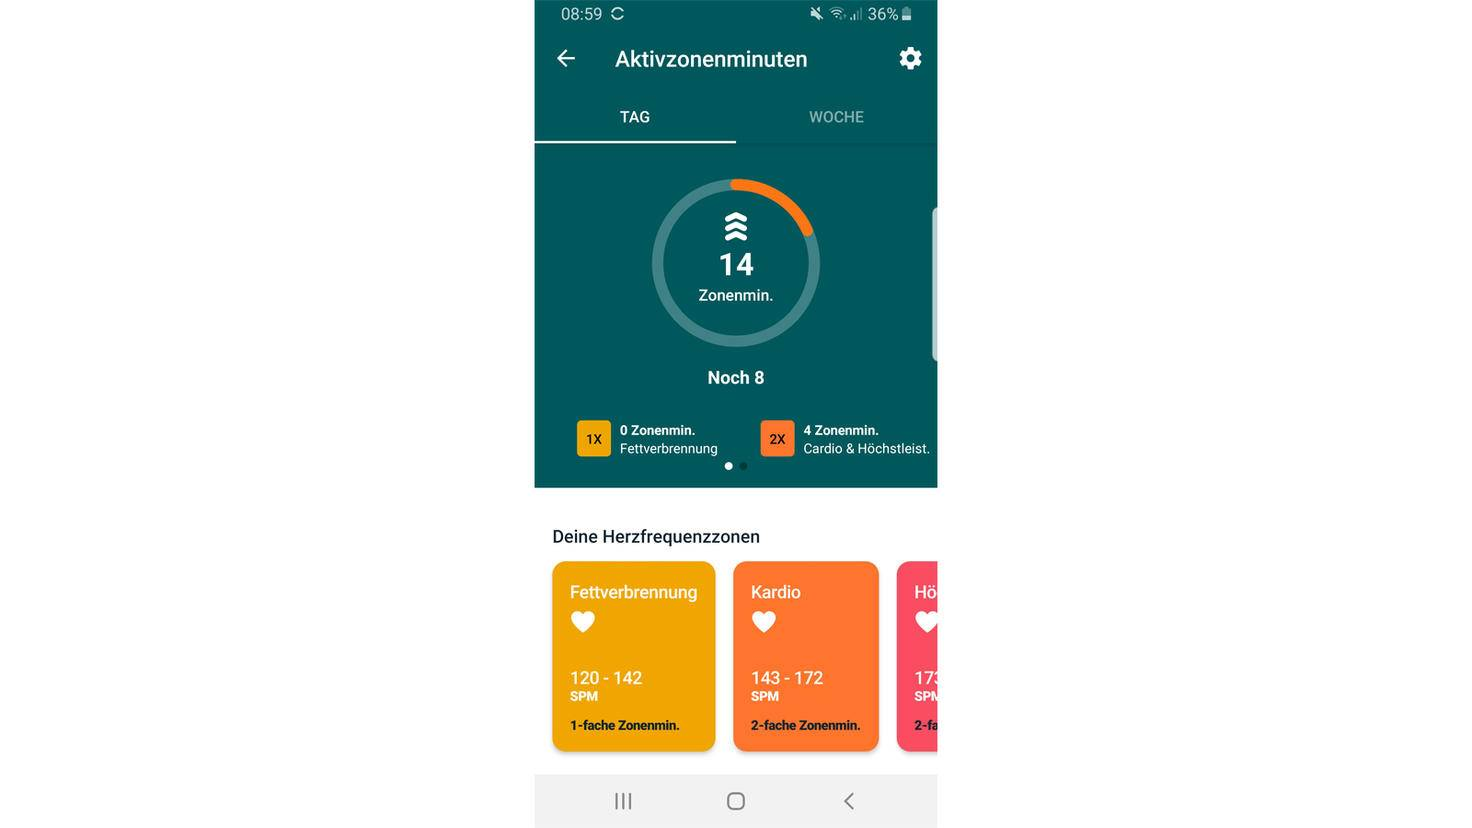 Fitbit Charge 4 activity zone minutes